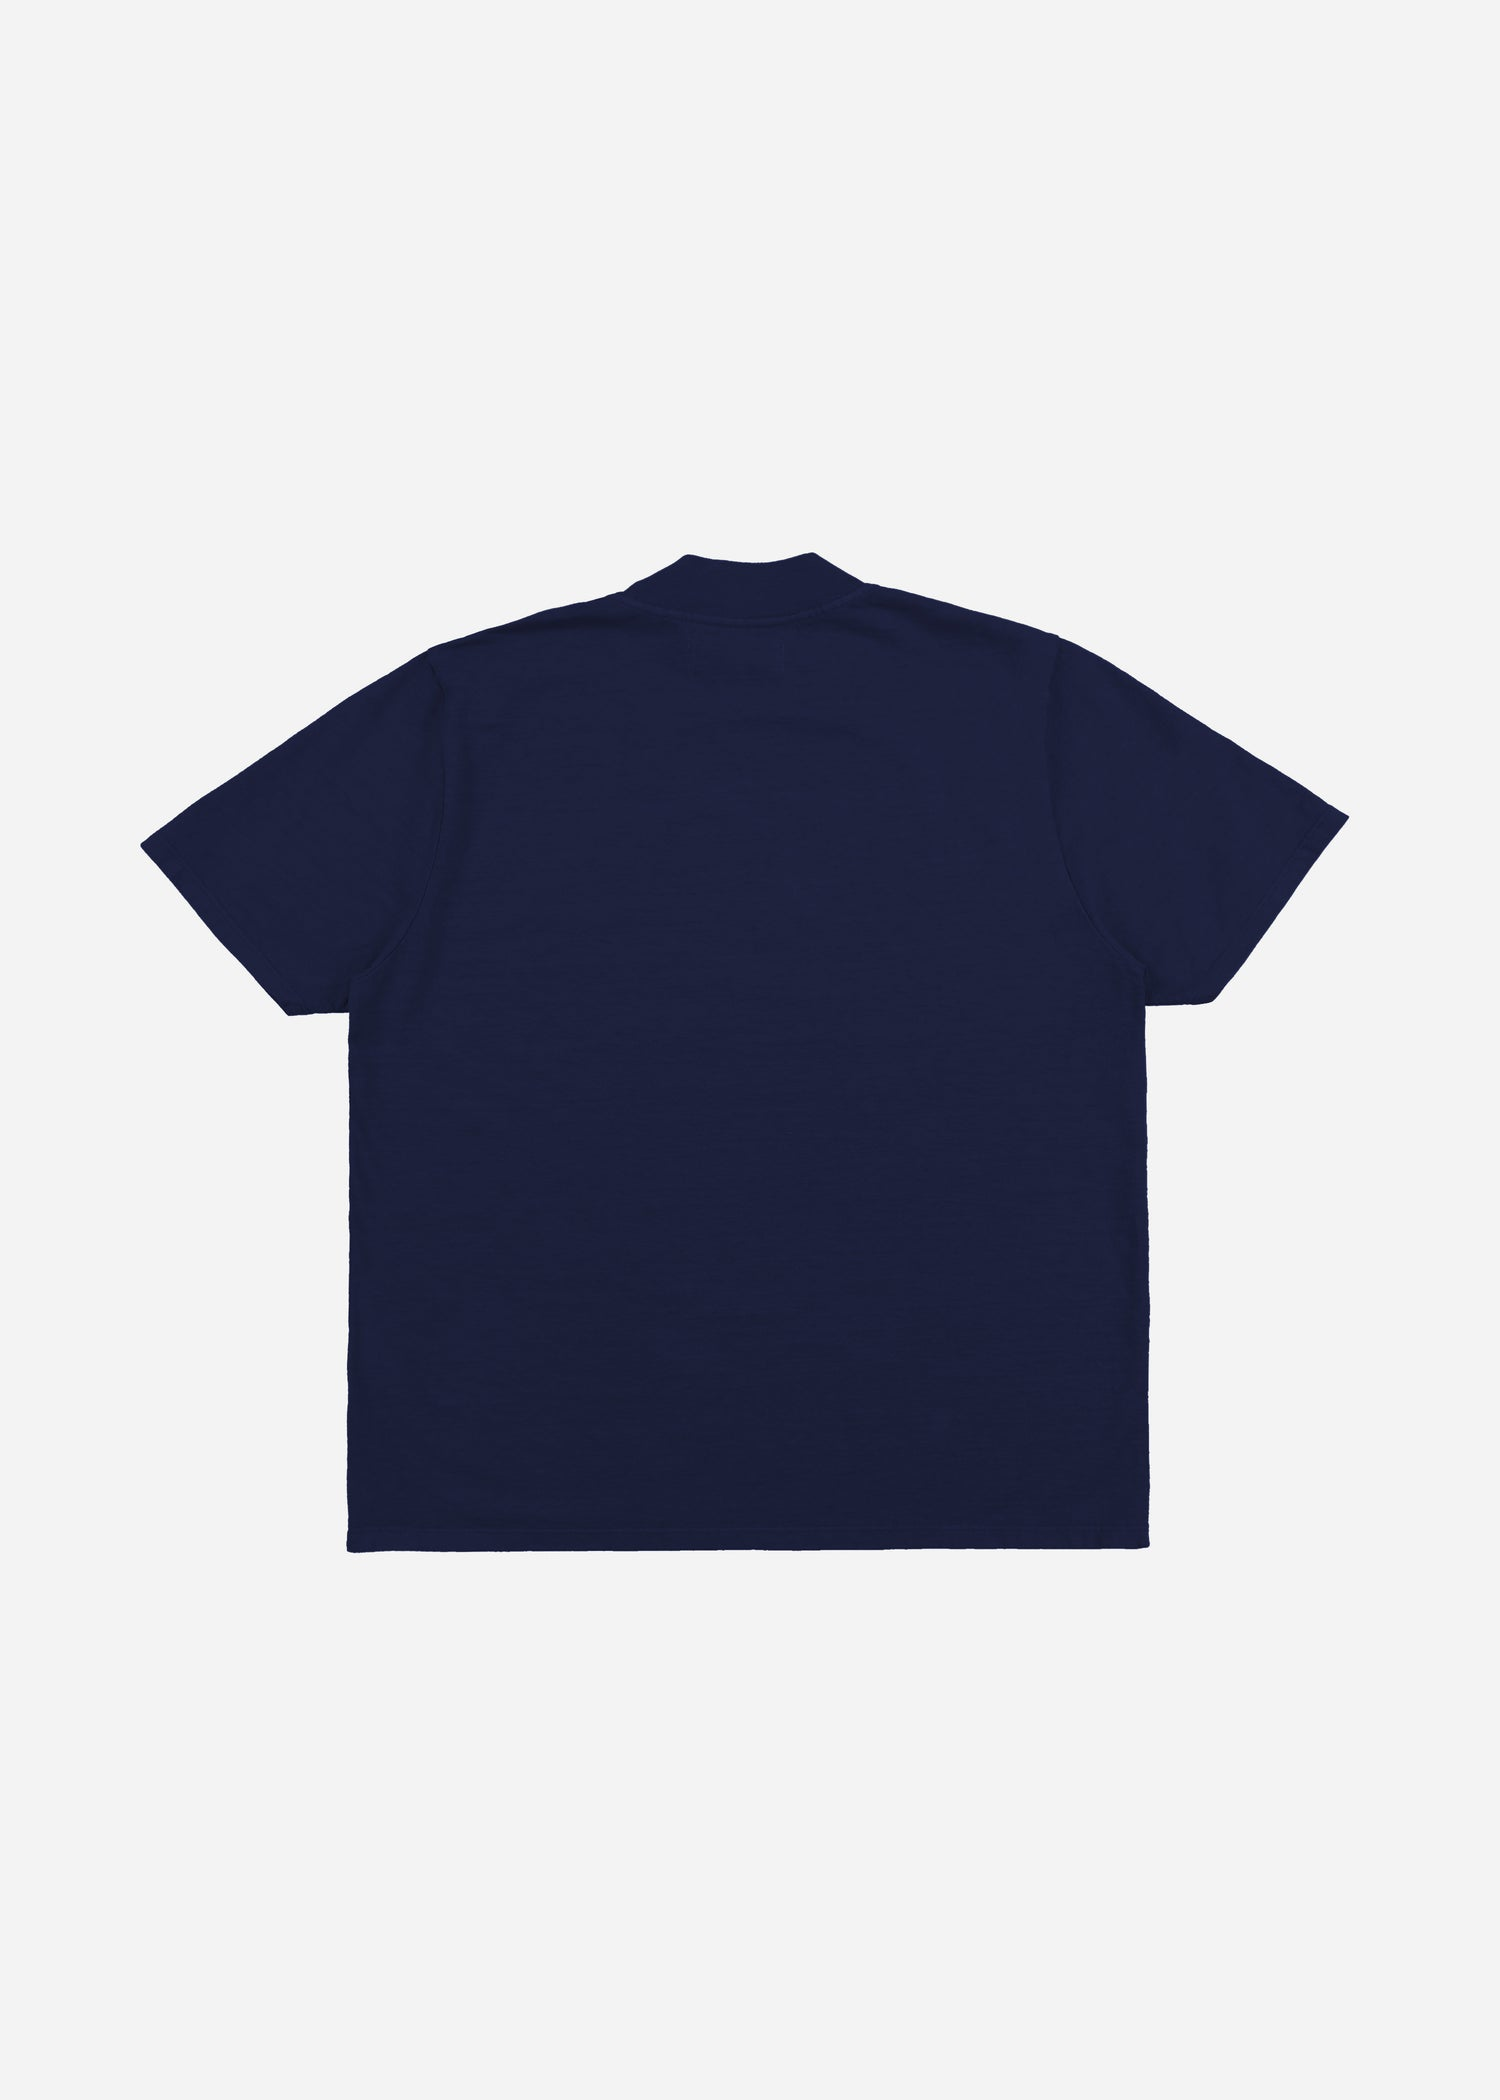 Mock Neck Tee Navy image-2